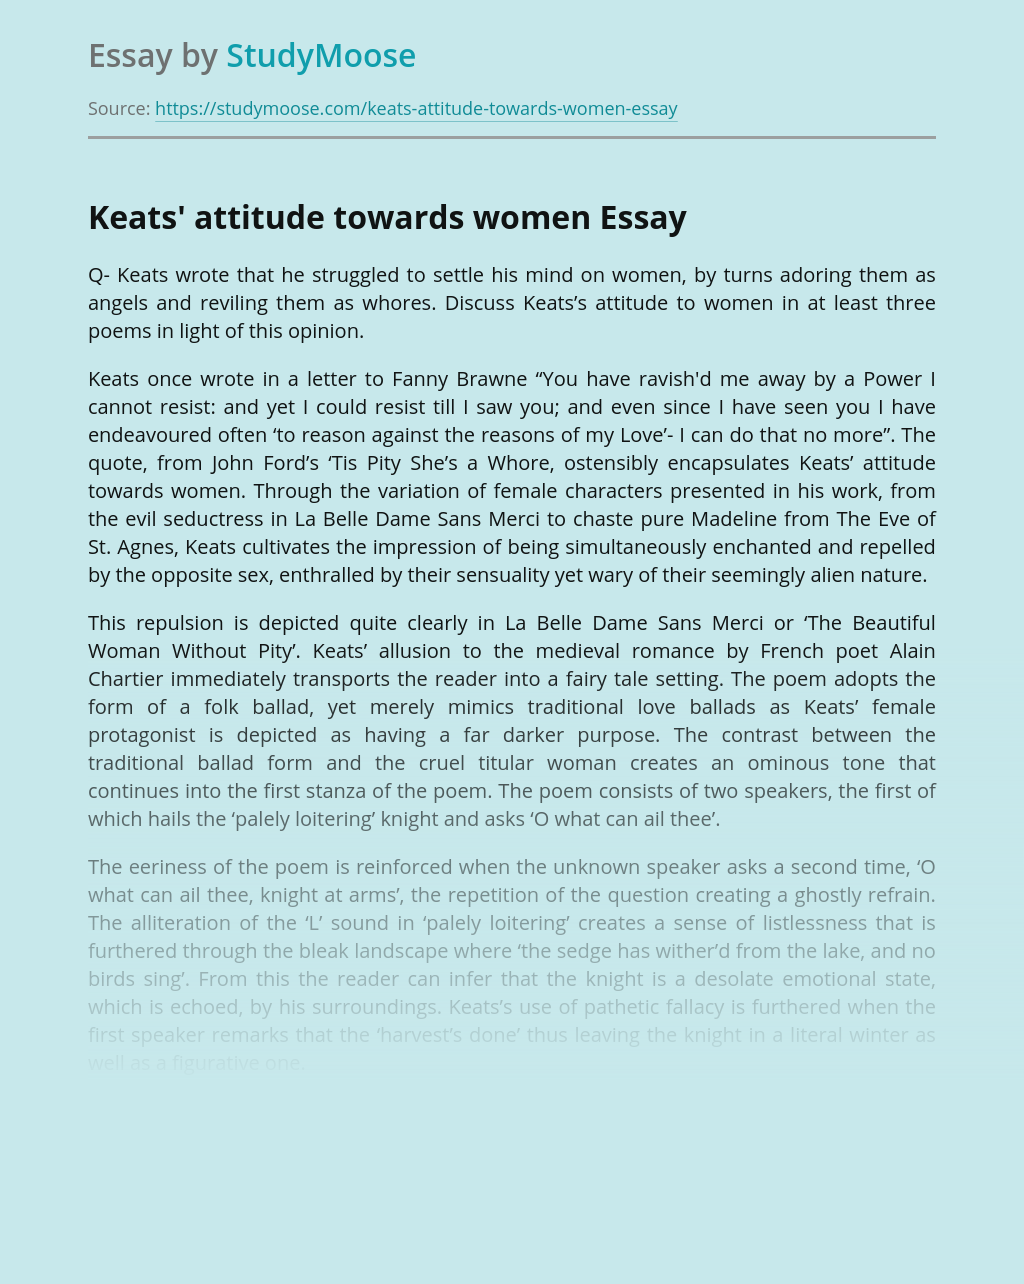 Keats' attitude towards women